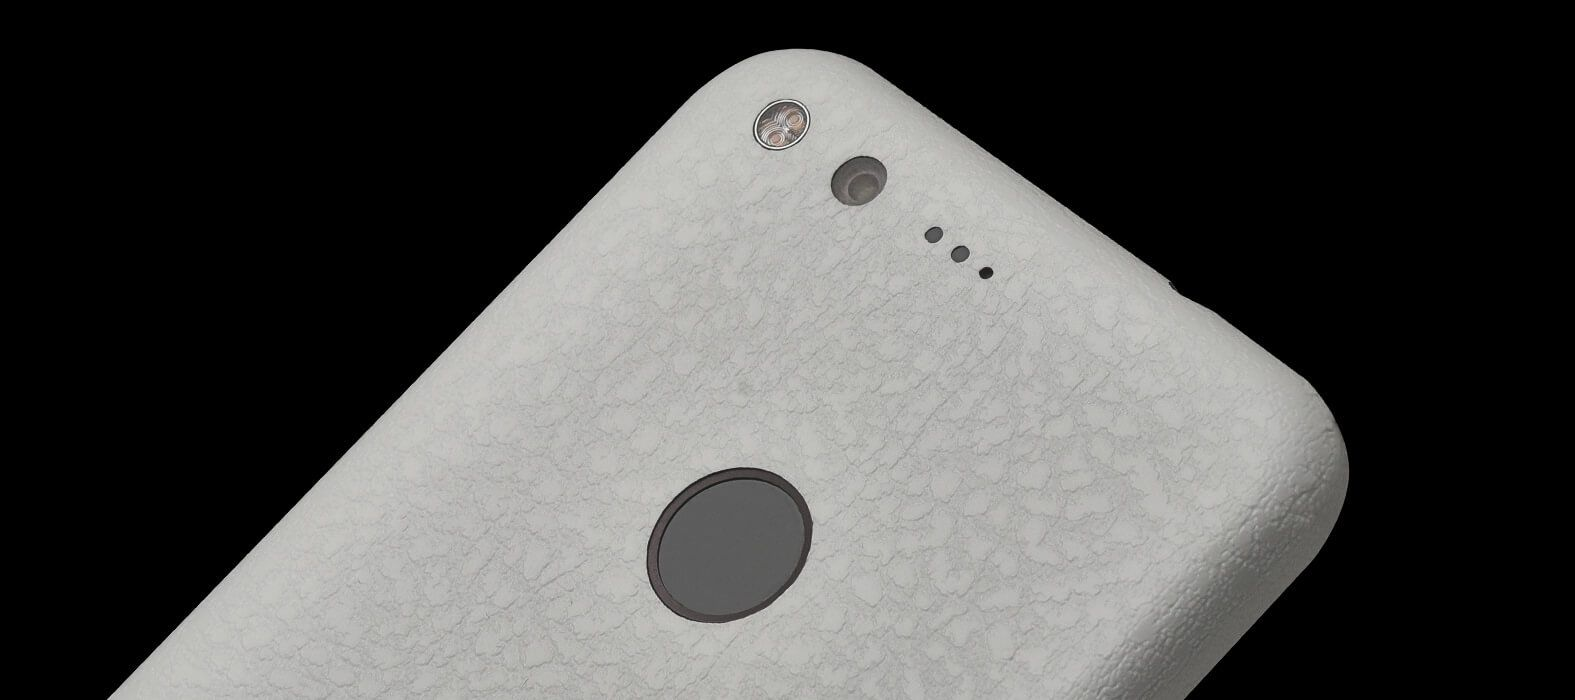 Pixel XL Wraps, Skins & Decals - White Leather